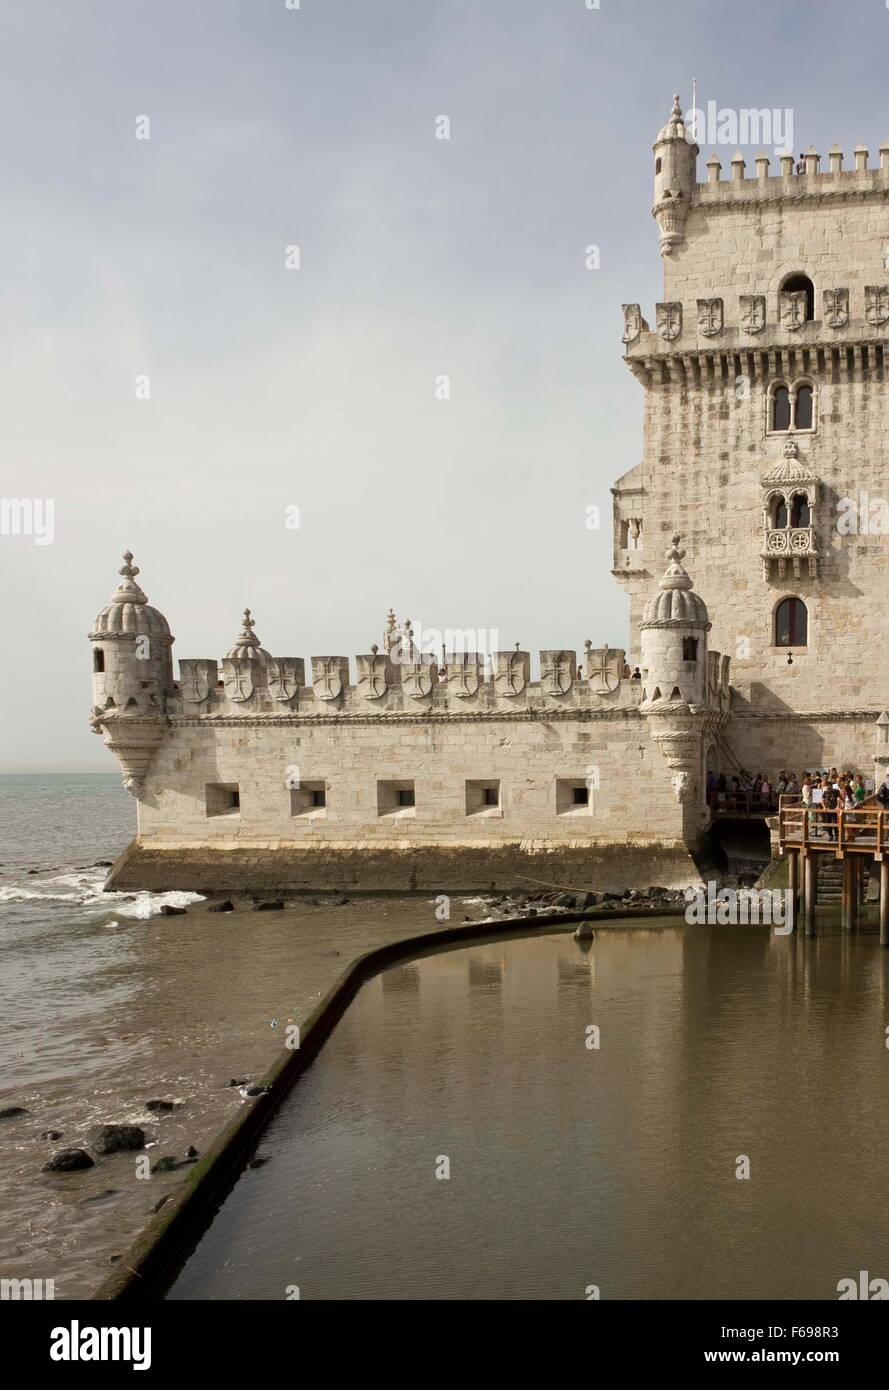 LISBON, PORTUGAL - OCTOBER 24 2014: external View of Belem Tower of Lisbon, Portugal, with people waiting to enter - Stock Image